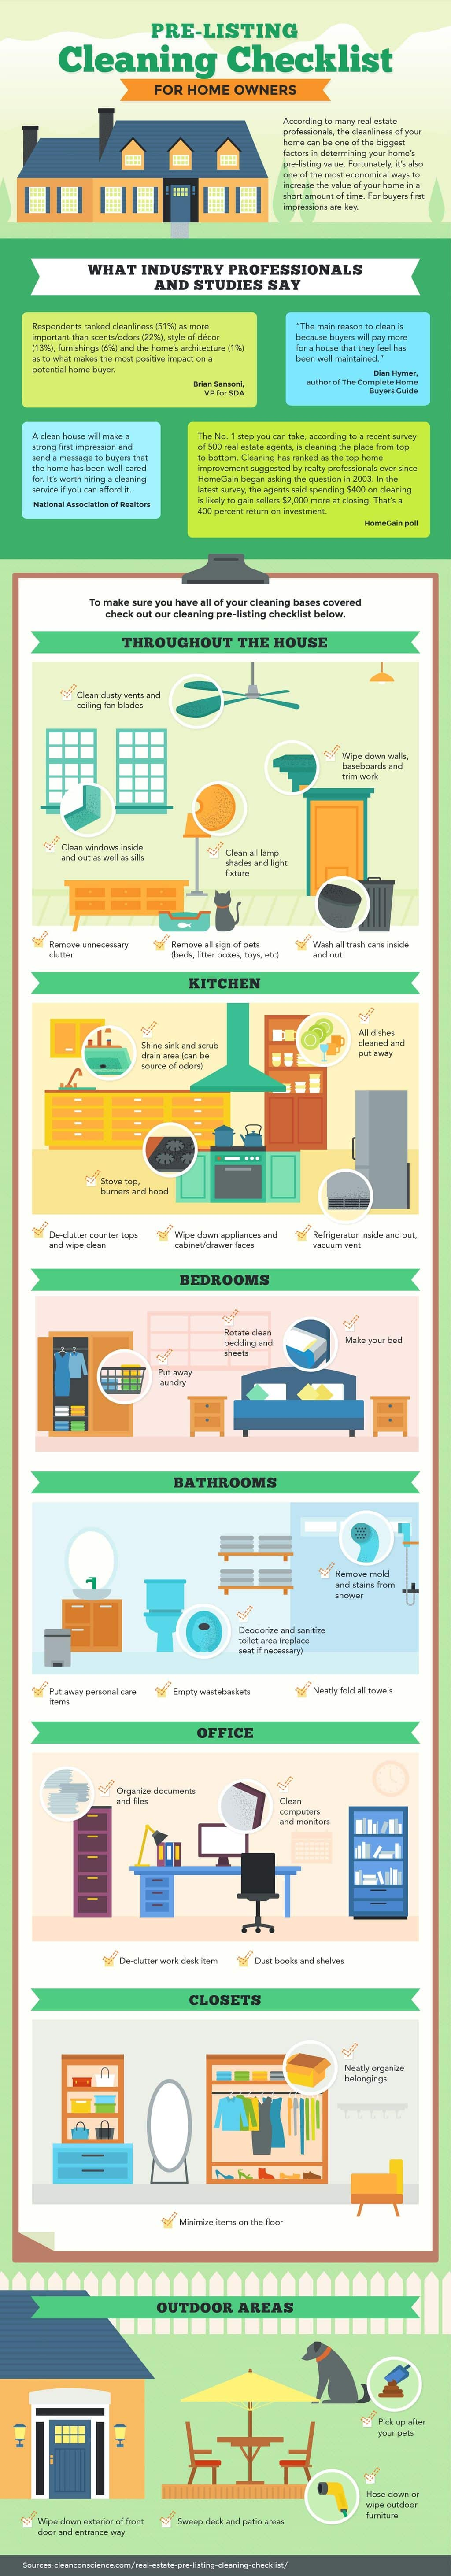 31 Great Cleaning Tips Pre-Sale Checklist For Your Home (Infographic) Home Improvements Infographics Latest Posts  Bathroom Home Inspection Infographic Kitchen Plumbing Selling a House